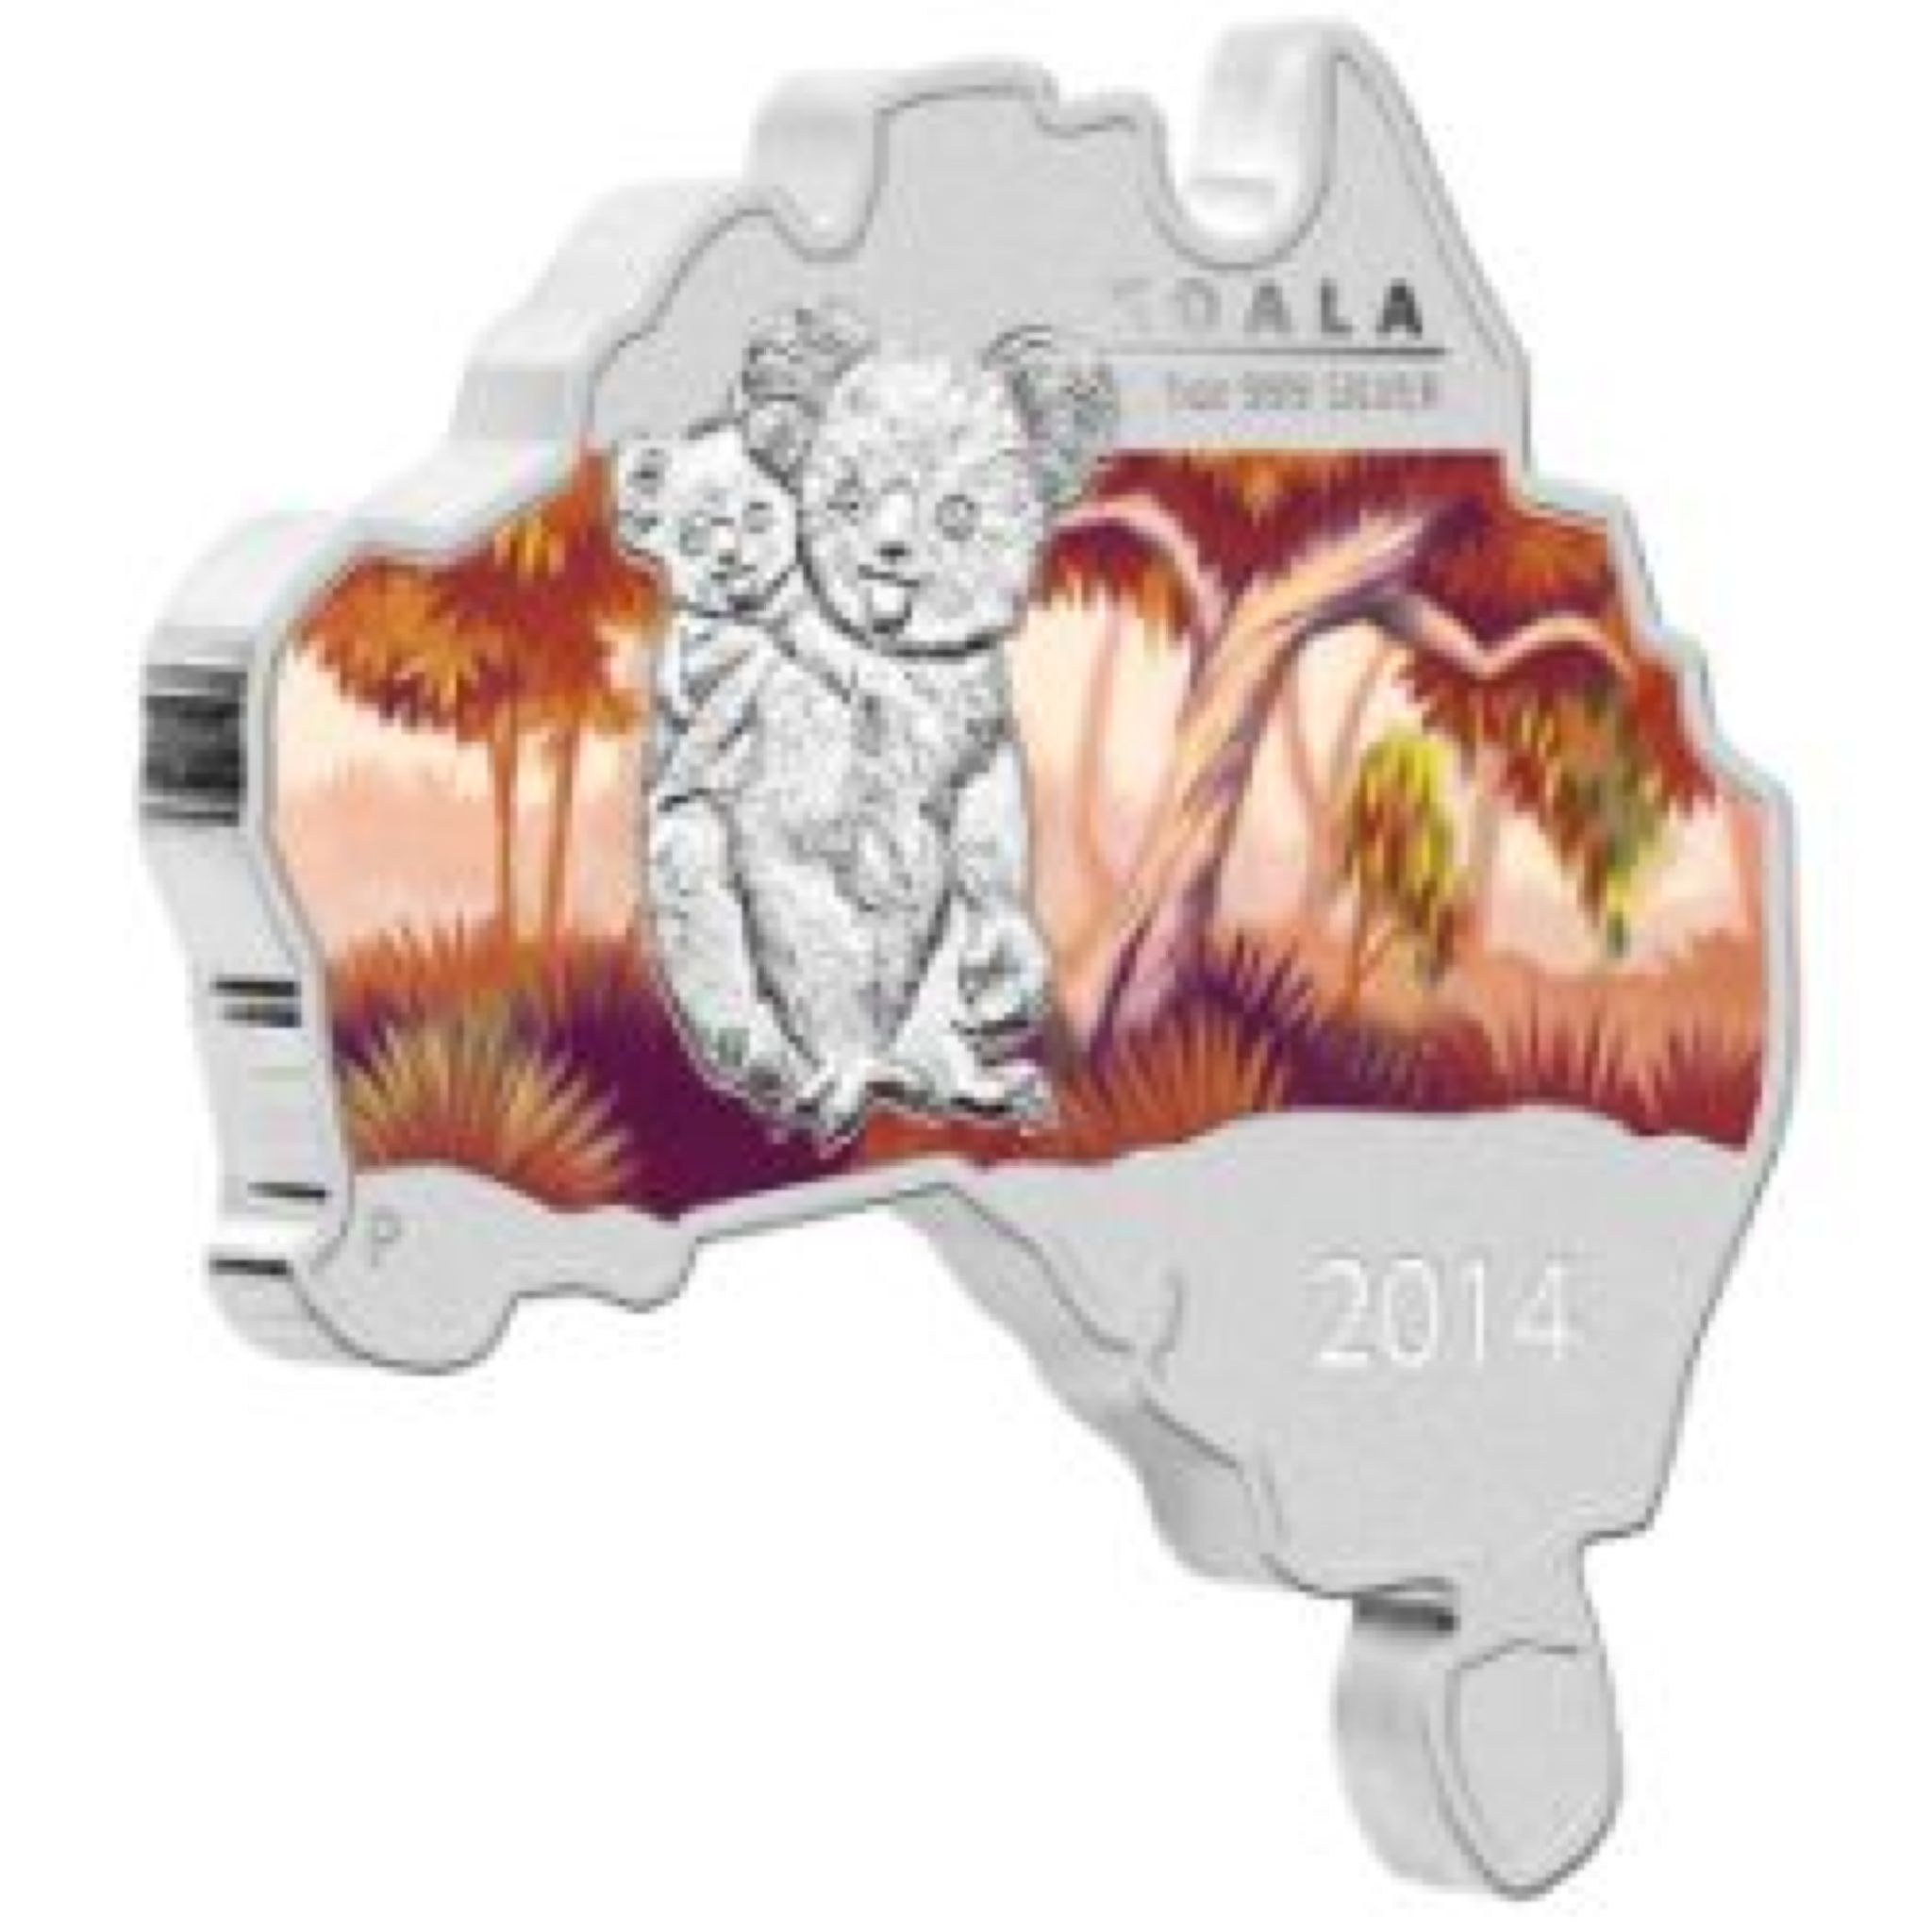 2014 Koala 1oz Map Shape Coin - $1 (2014) front image (front cover)